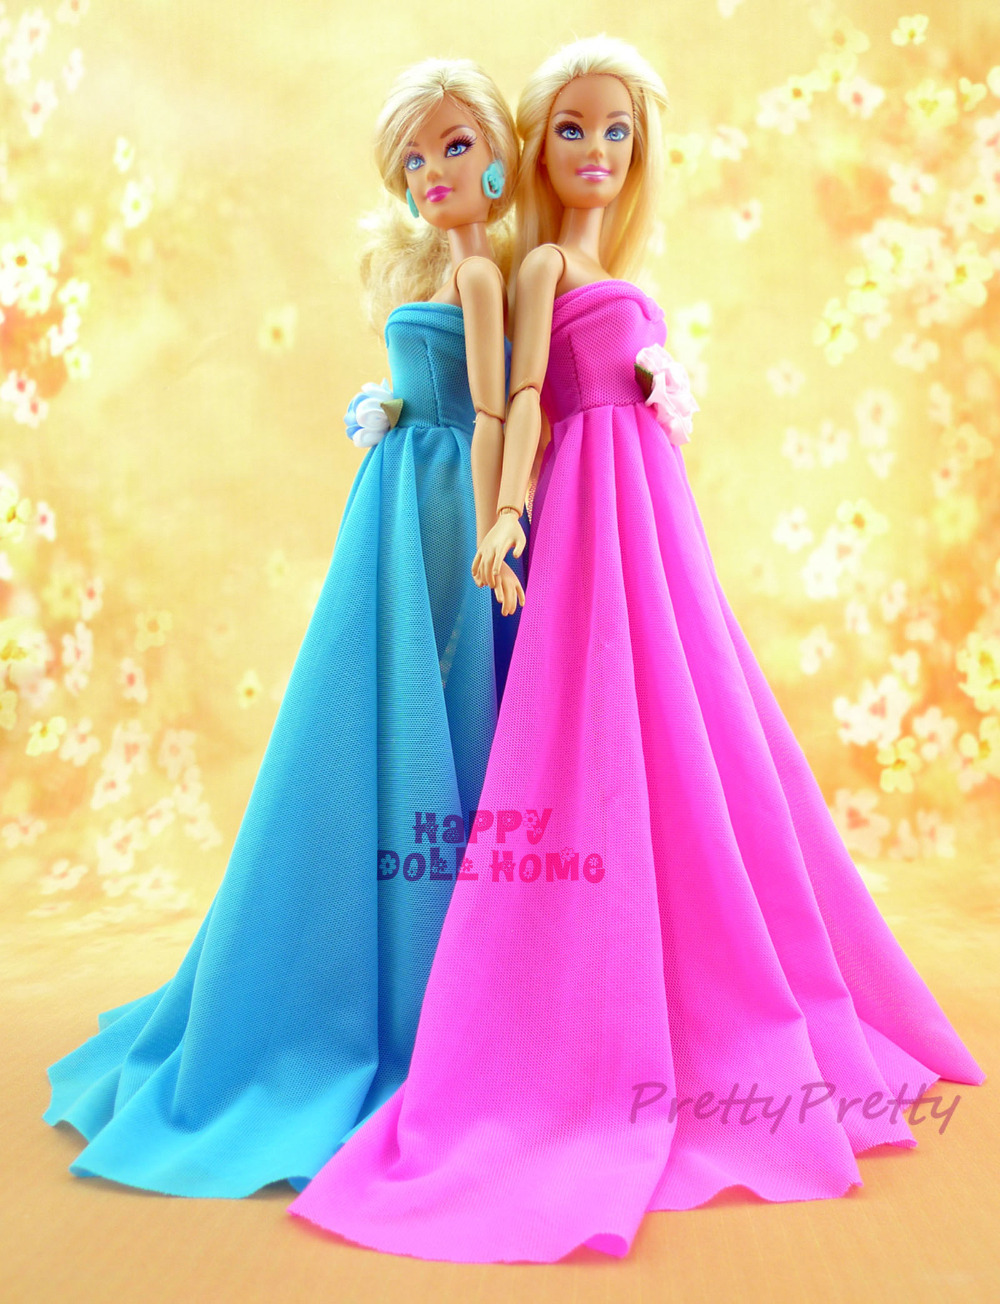 essay on my favourite toy barbie for kids The barbie doll was a breath of fresh air for children and the toy industry which   the barbie doll has been a growing favorite for little girls all over the world.